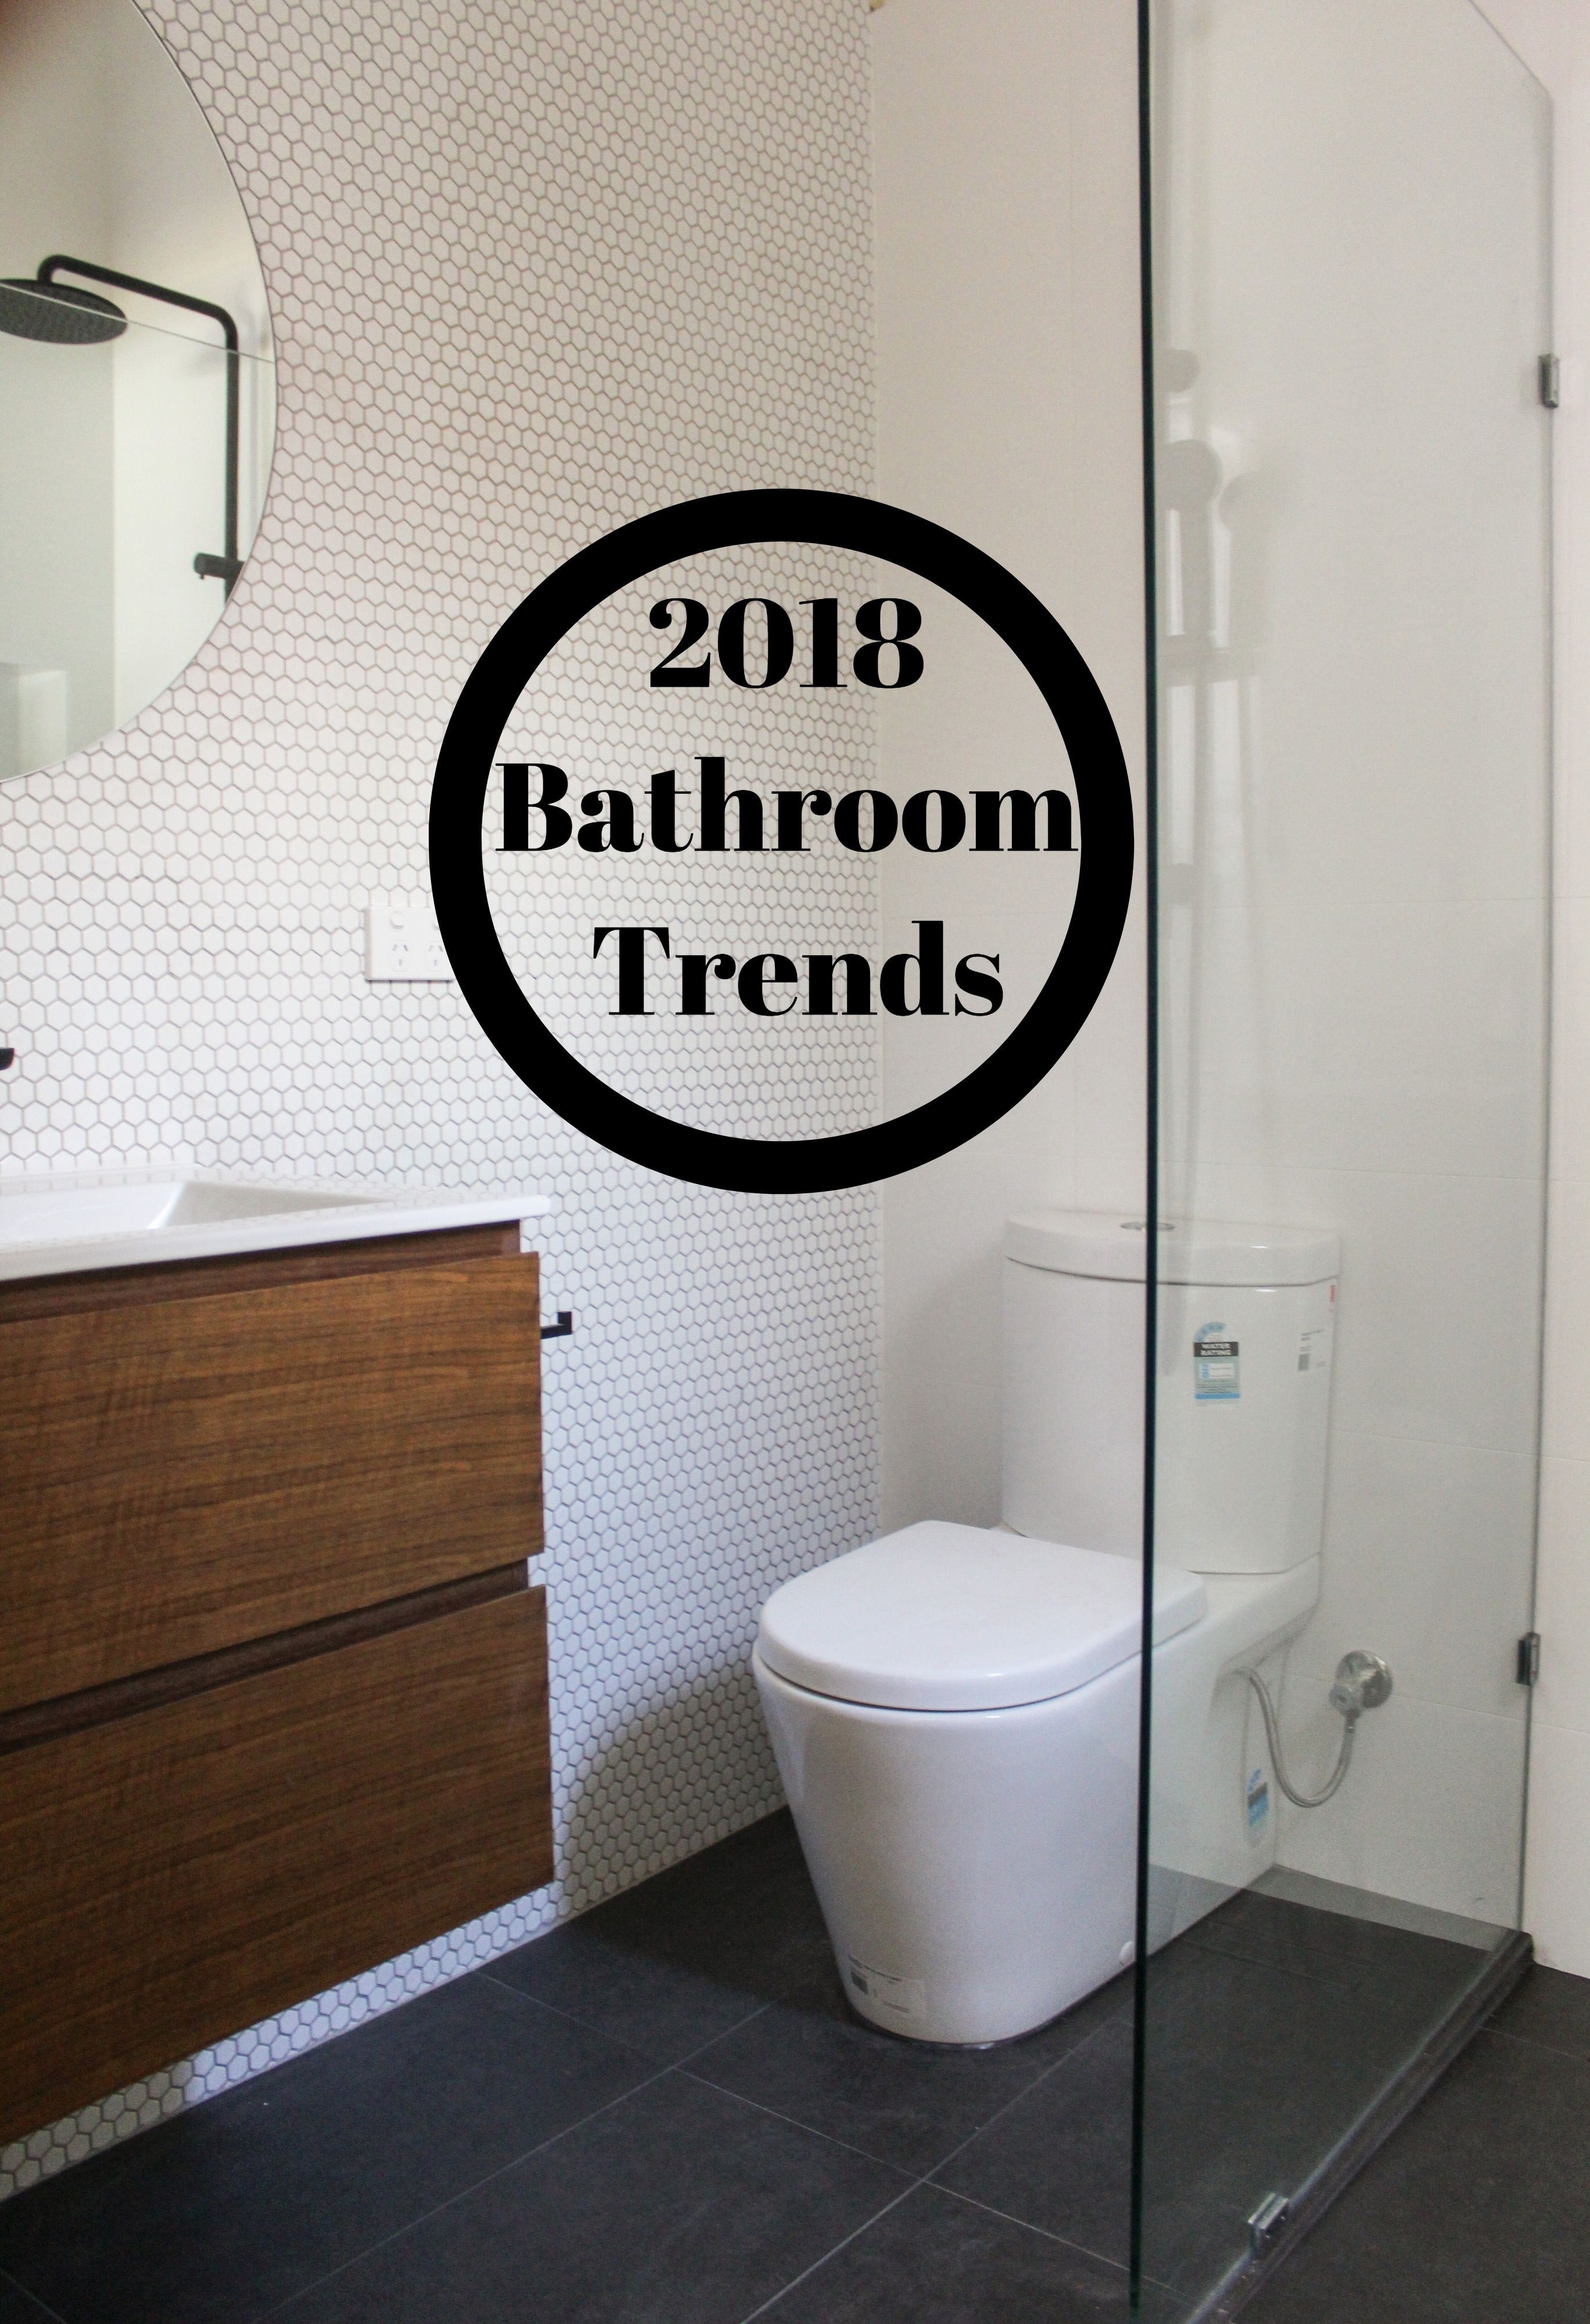 Swell 5 Bathroom Renovation Trends 2018 Download Free Architecture Designs Scobabritishbridgeorg